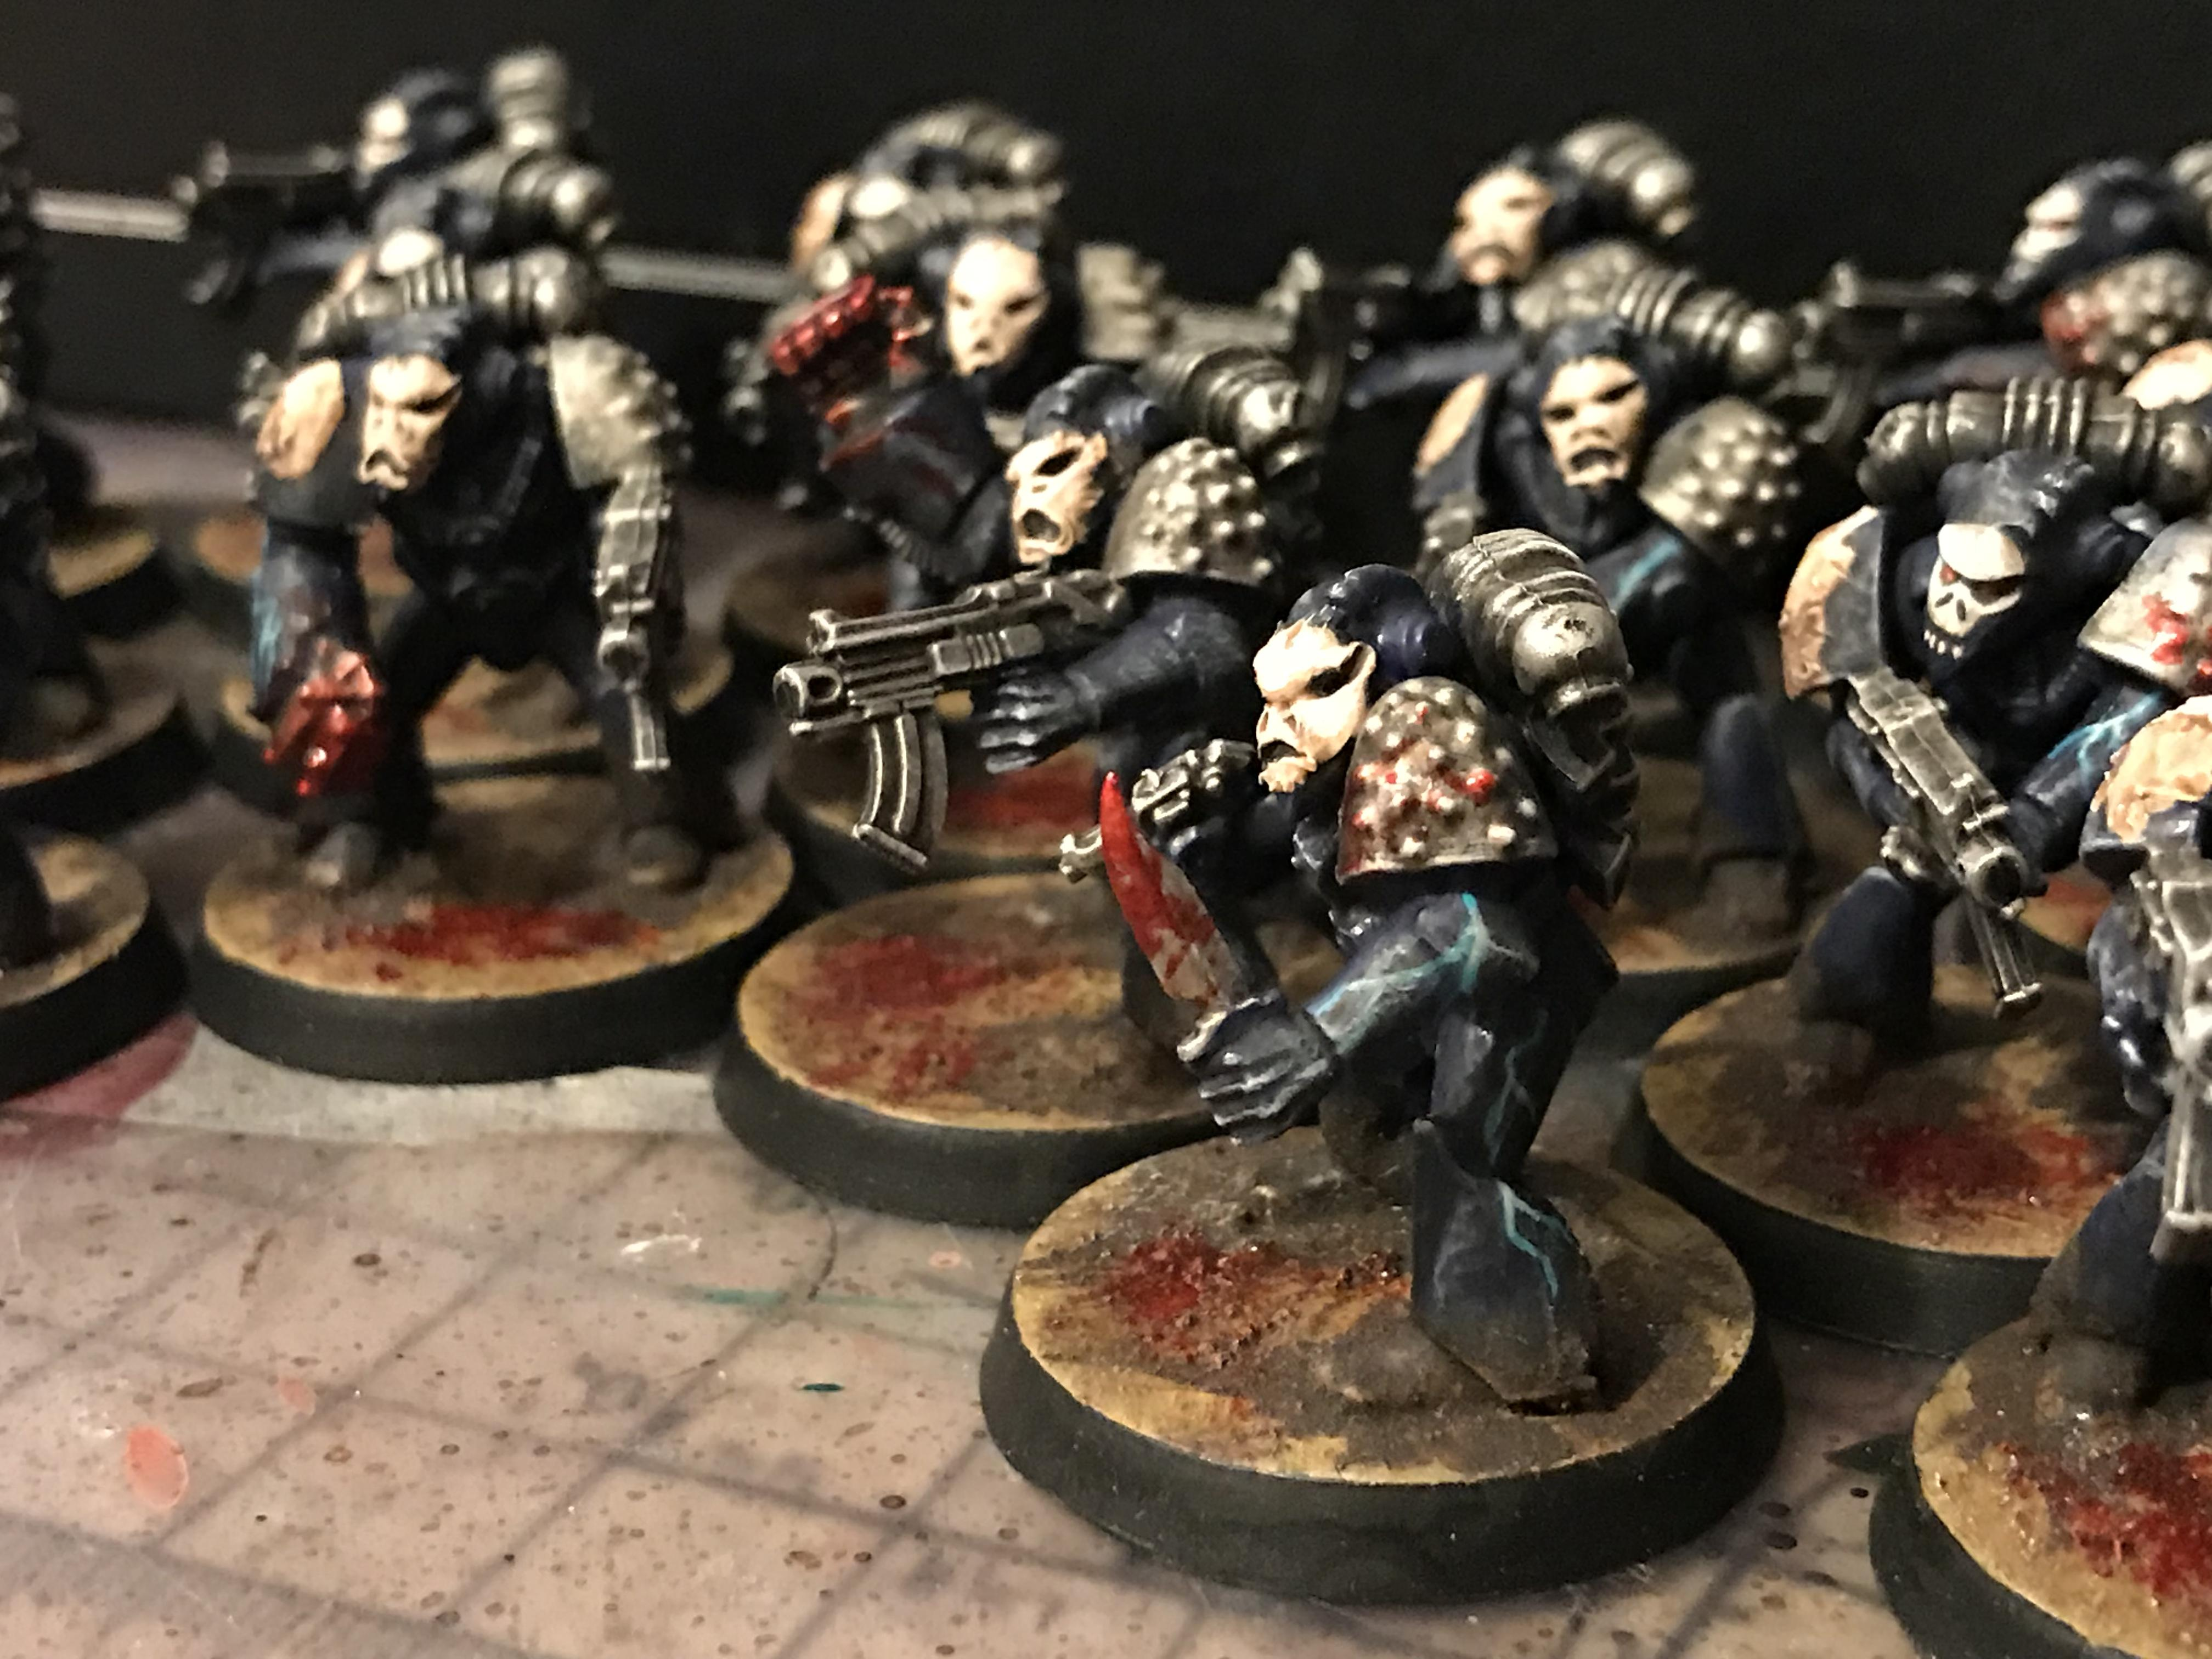 30k, Armor, Army, Assault, Astardes, Attack, Black, Blood, Chaos, Chosen, Classic, Conversion, Corrupted, Crimson, Crusade, Curze, Death, Era, Evil, Fast, Flayed, Flayer, Flesh, Great, Green, Grisly, Hand, Heresy, Heretic, Horrors, Horus, Kaos, Kill, Killers, Kit Bash, Konrad, Legion, Legionnaire, Legionnaires, Legionnes, Legions, Lightning, Lord, Lords, Man, Mask, Murder, Murderers, Night, Night Lords, Out Of Production, Pained, Pirate, Pirates, Power, Primarch, Rage, Raiders, Raptors, Reaver, Reavers, Red, Renegade, Renegades, Retinue, Retro, Rogue, Rtb01, Saboteur, Sculpting, Shadow, Shroud, Skin, Soul, Space, Space Marines, Stalkers, Stealth, Stuff, Tactics, Team, Terror, Torture, Trader, Traitor, Traitors, Troops, Trophies, Twisted, Veteran, Vile, Violence, Violent, Warhammer 40,000, Warhammer Fantasy